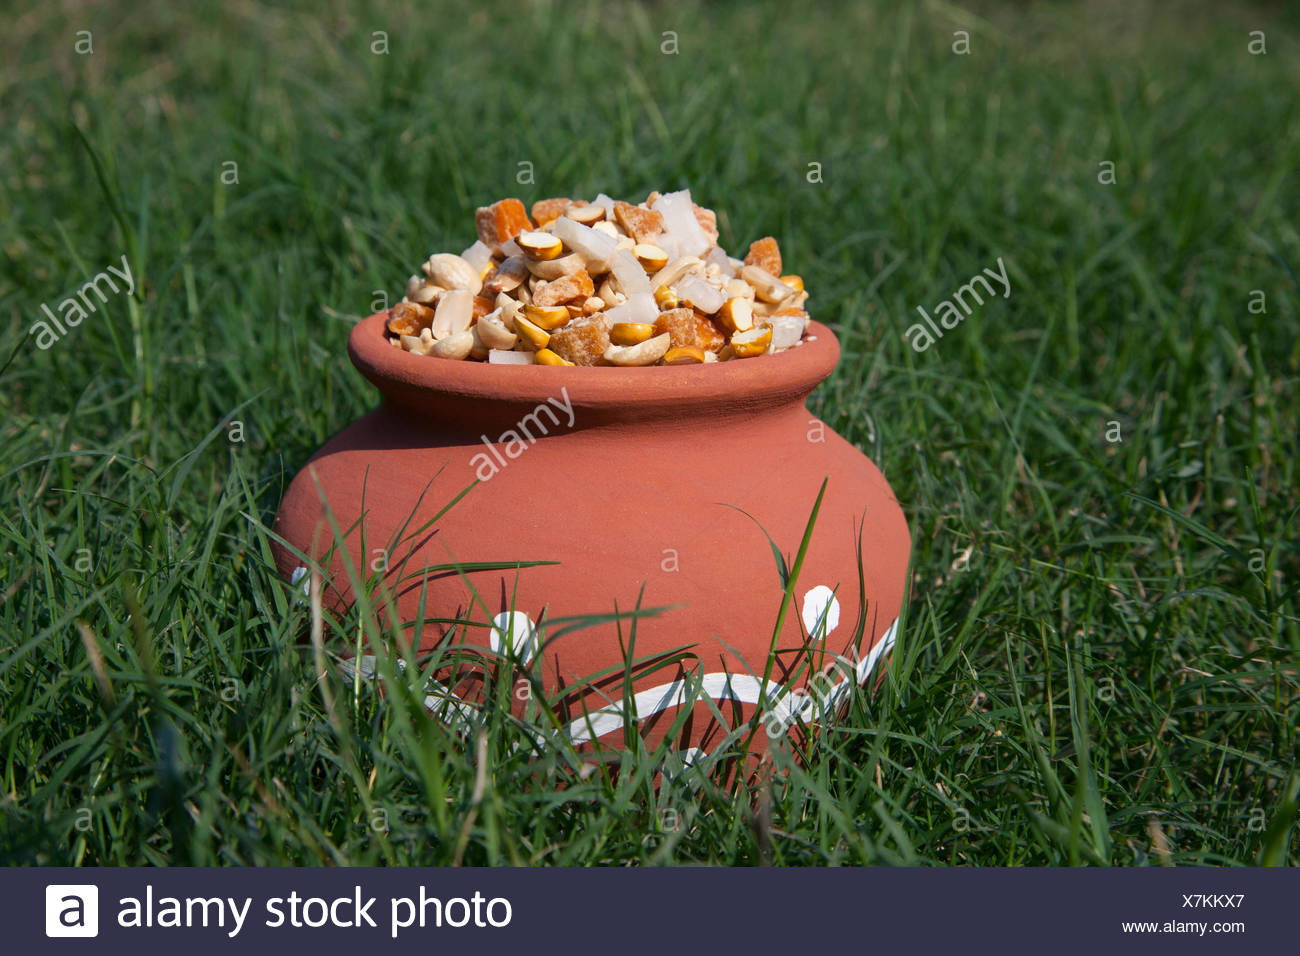 Earthen pot with variety of ingredients - Stock Image